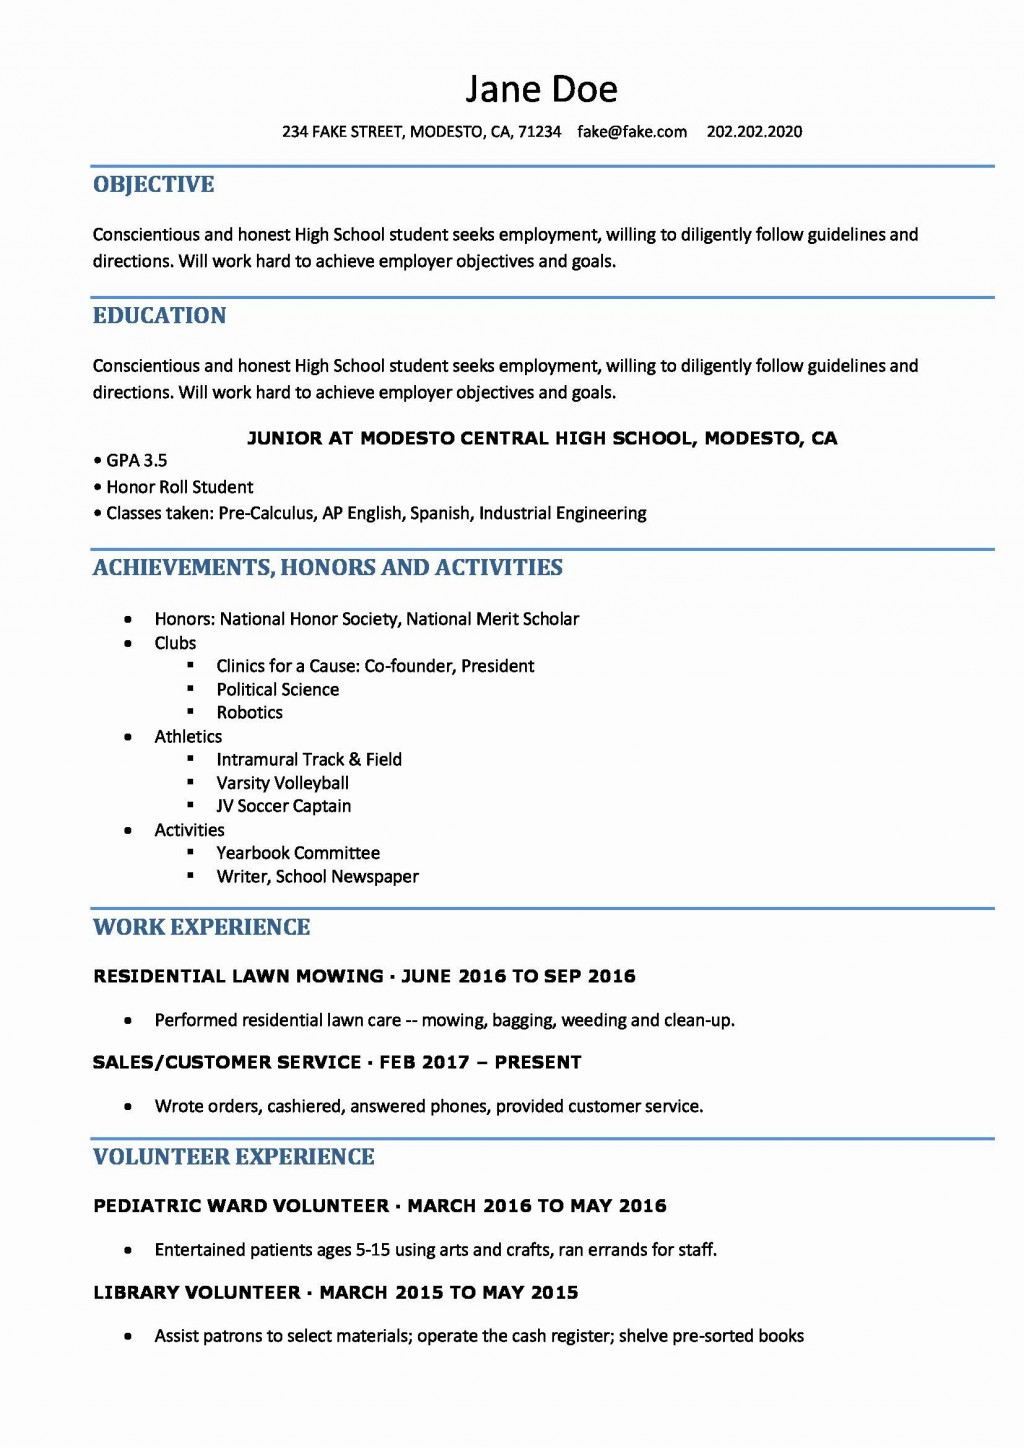 002 Frightening High School Student Resume Template Def  Free Microsoft Word 2010Large